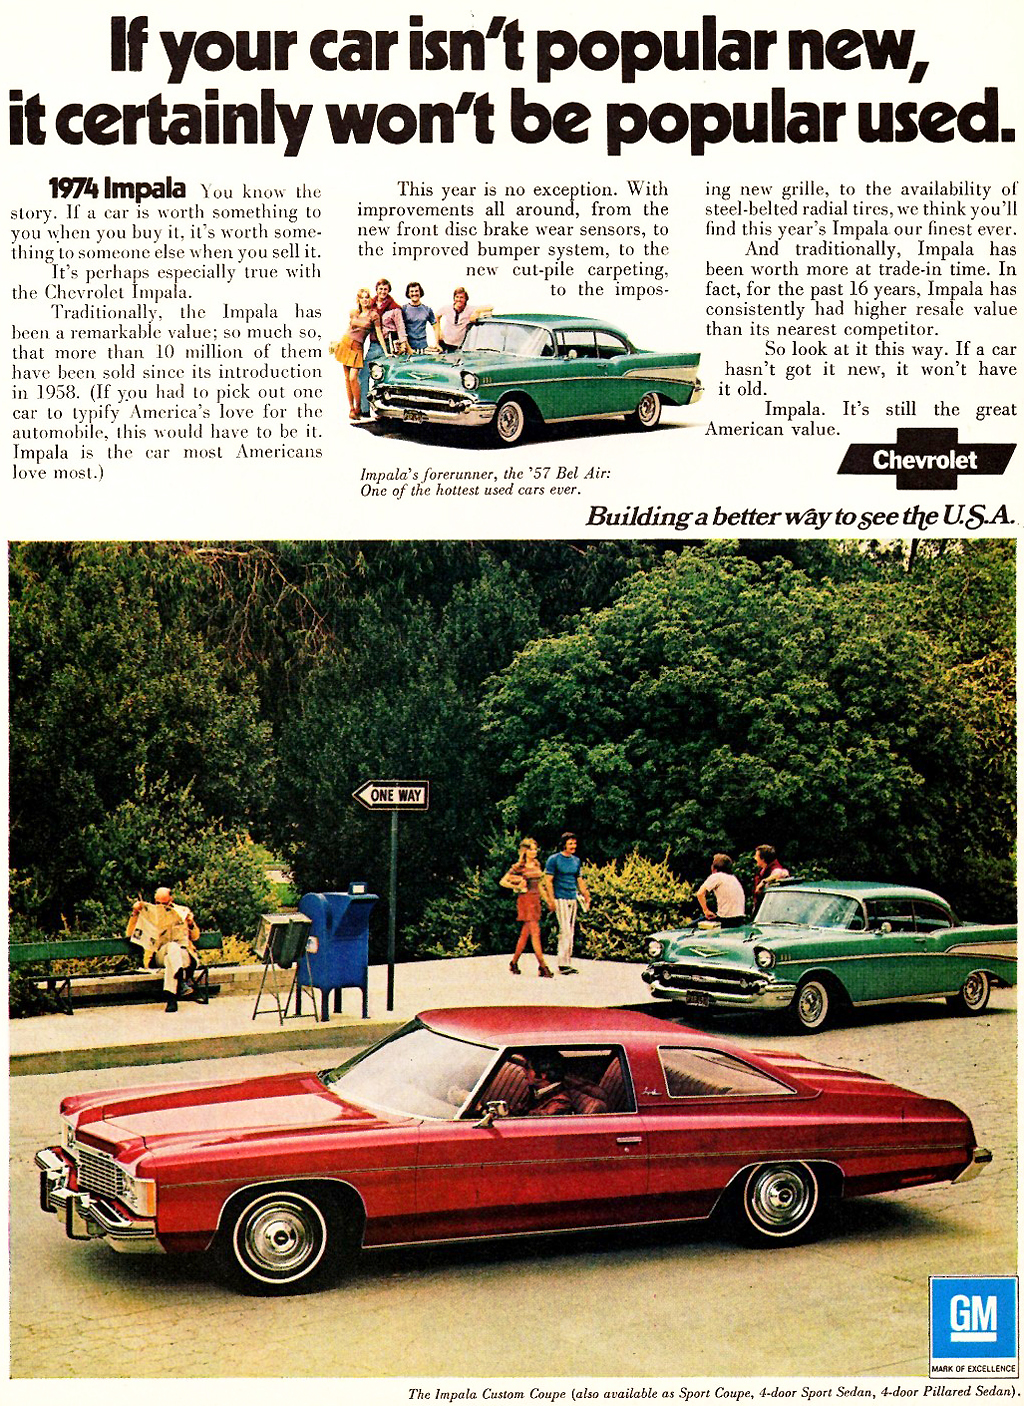 1974 Chevrolet Impala Custom Coupe ad | CLASSIC CARS TODAY ONLINE